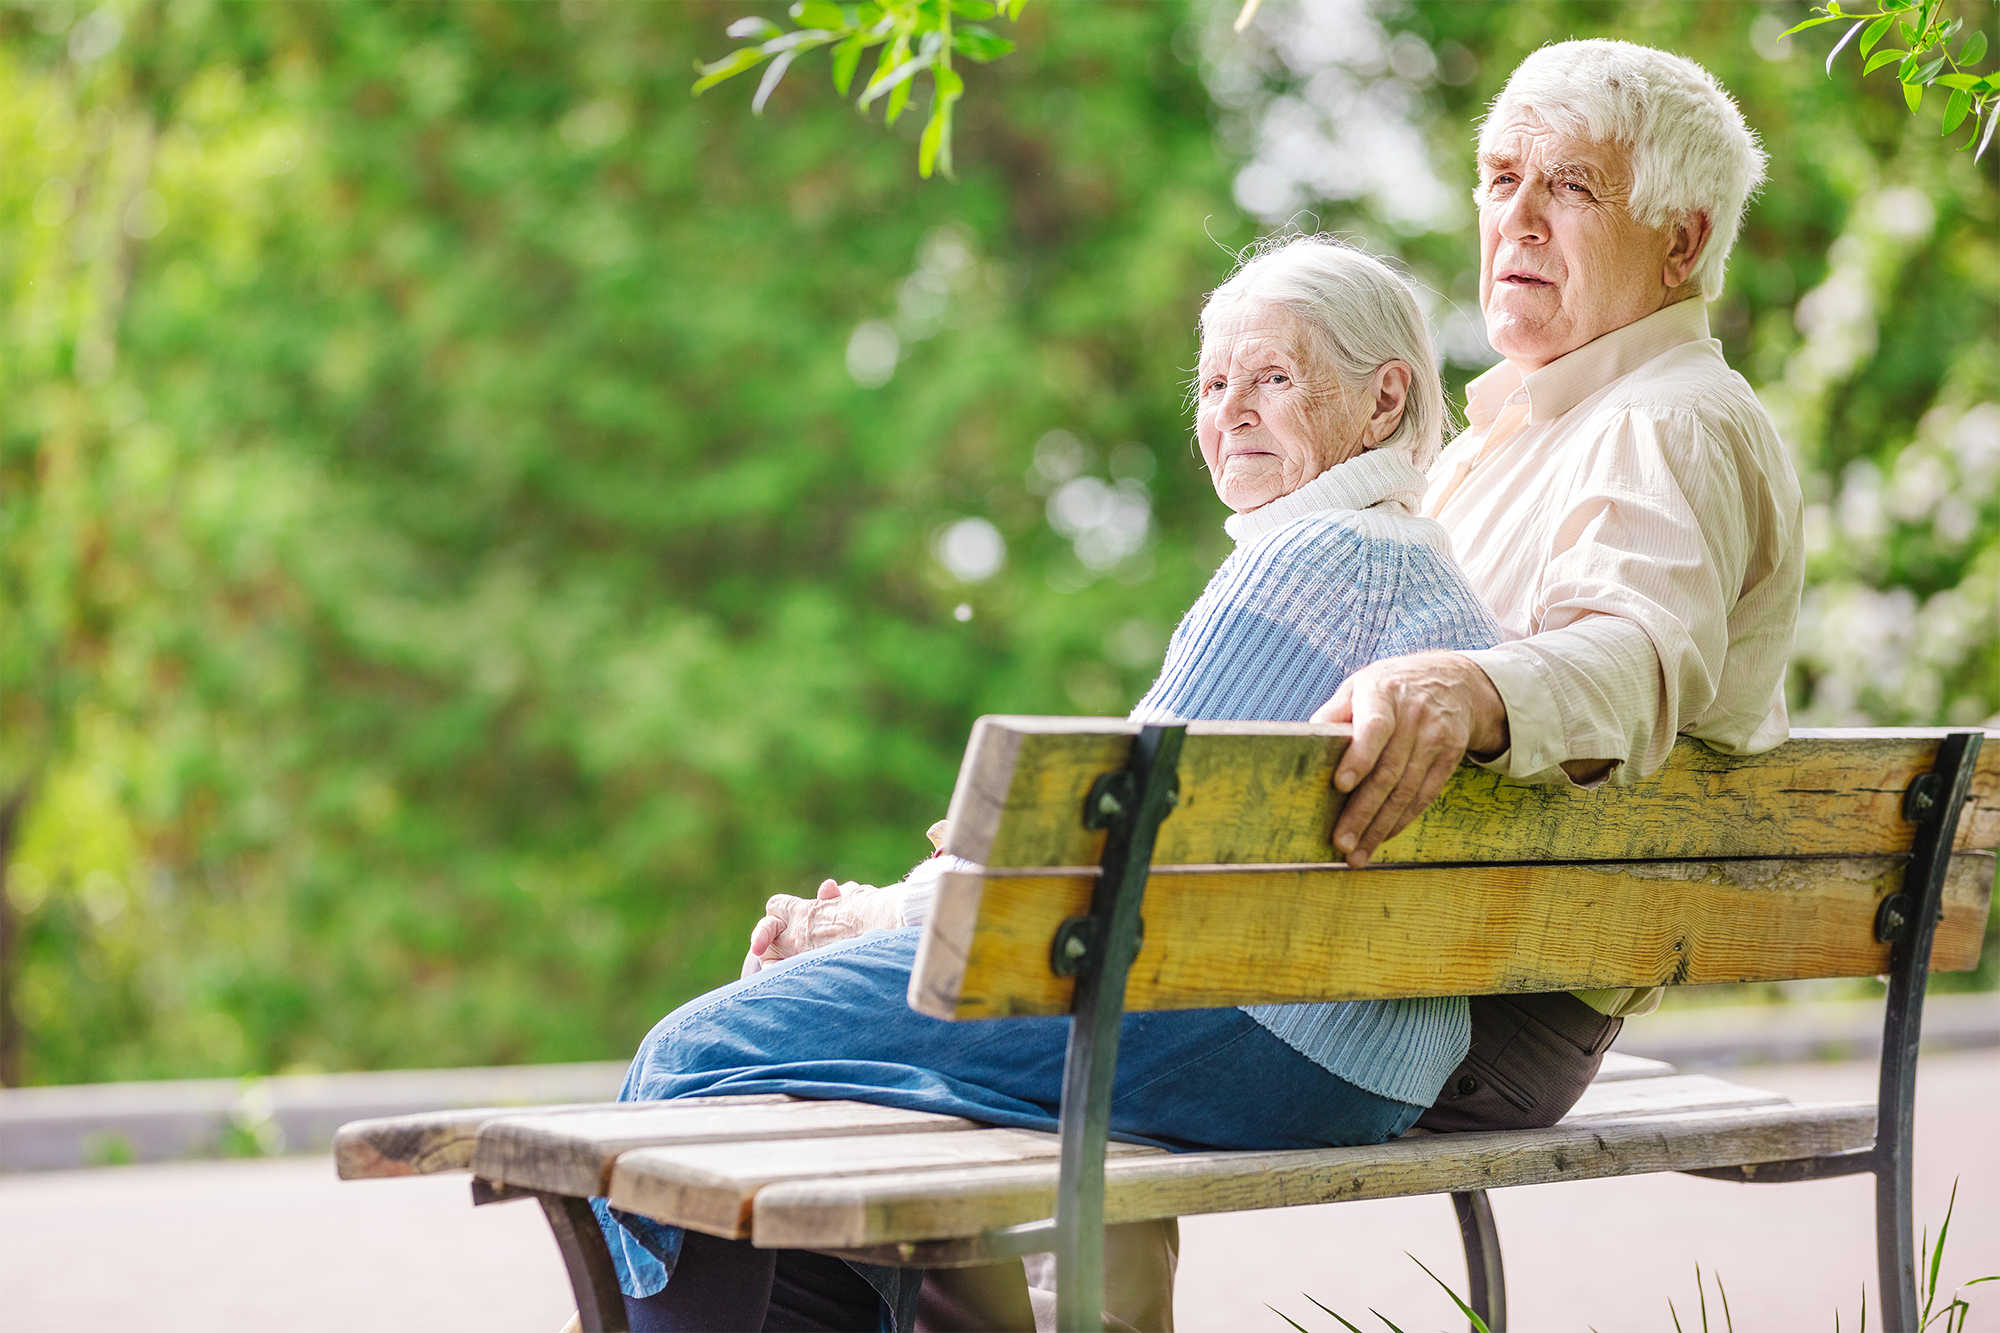 Two elders sitting together on sunny park bench.